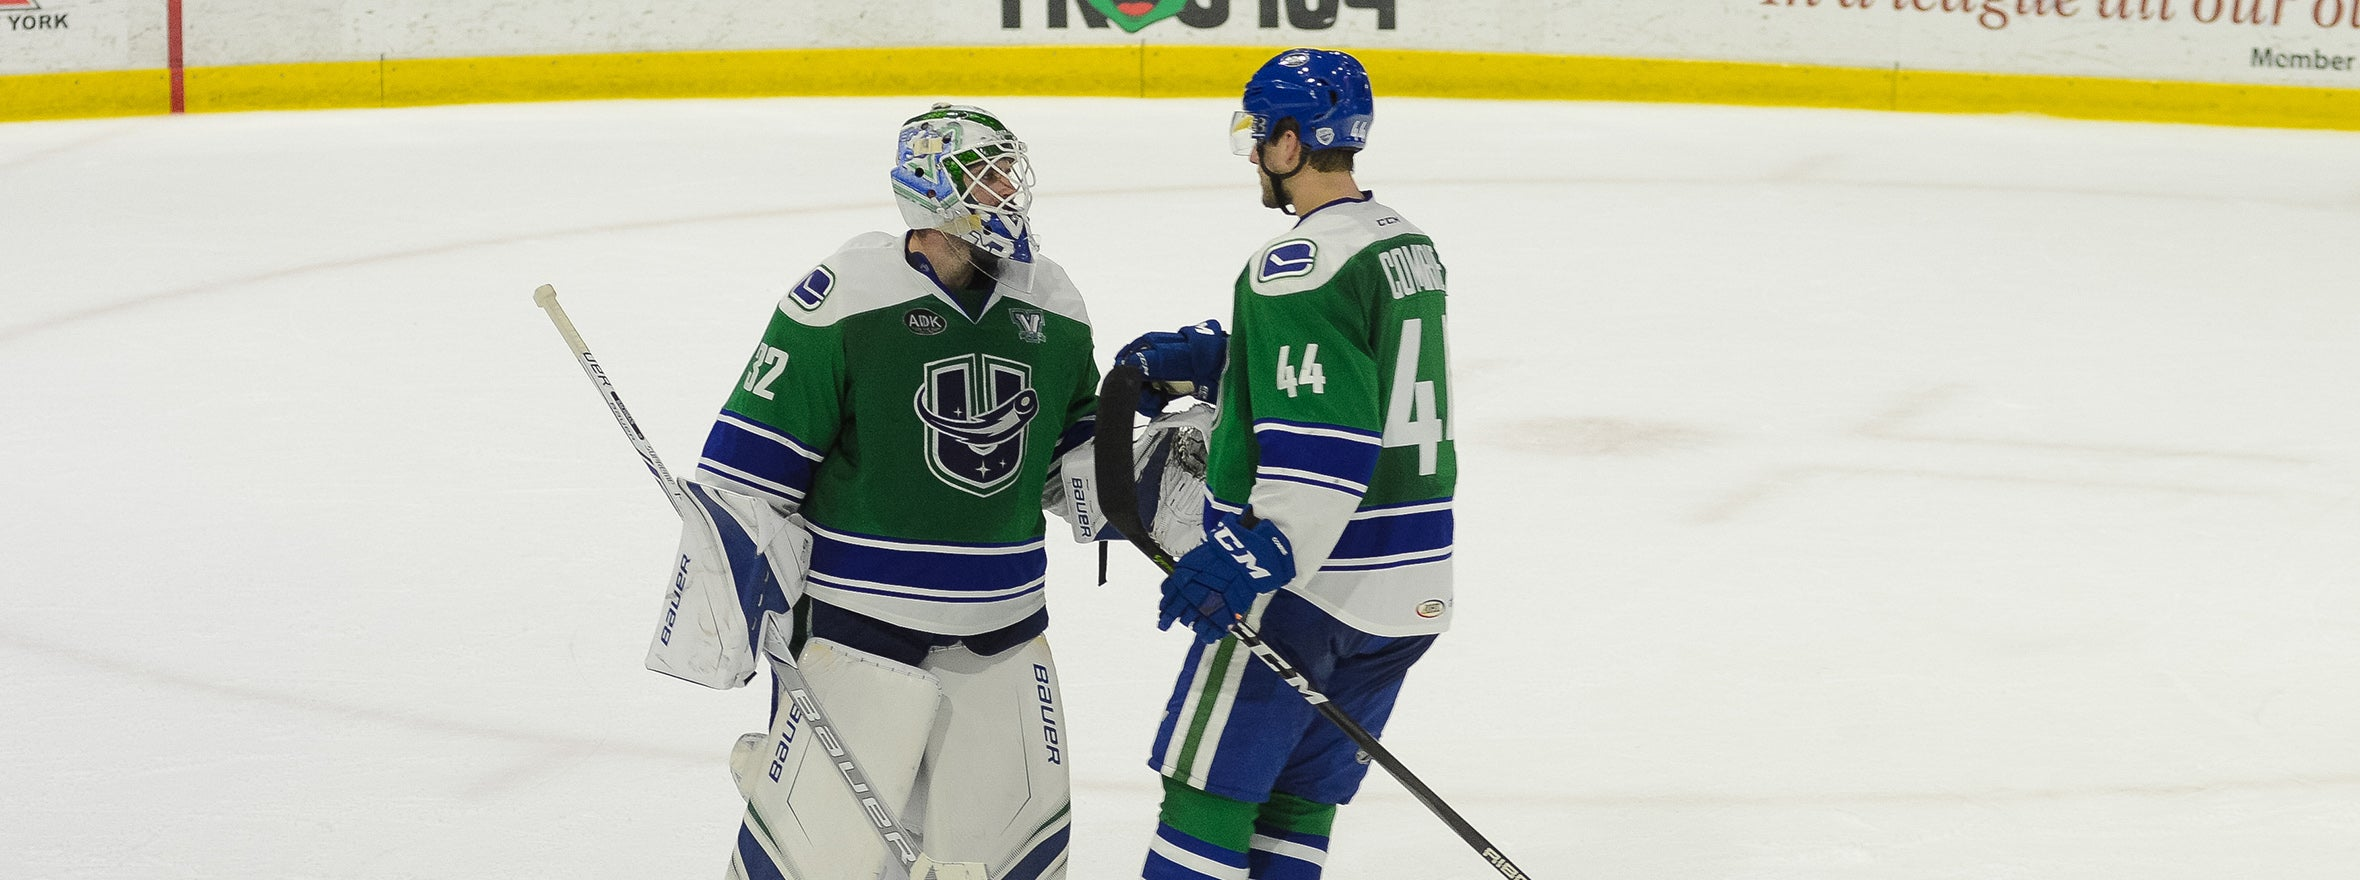 D'AOUST SCORES TWICE AS COMETS KISS HERSHEY GOODBYE